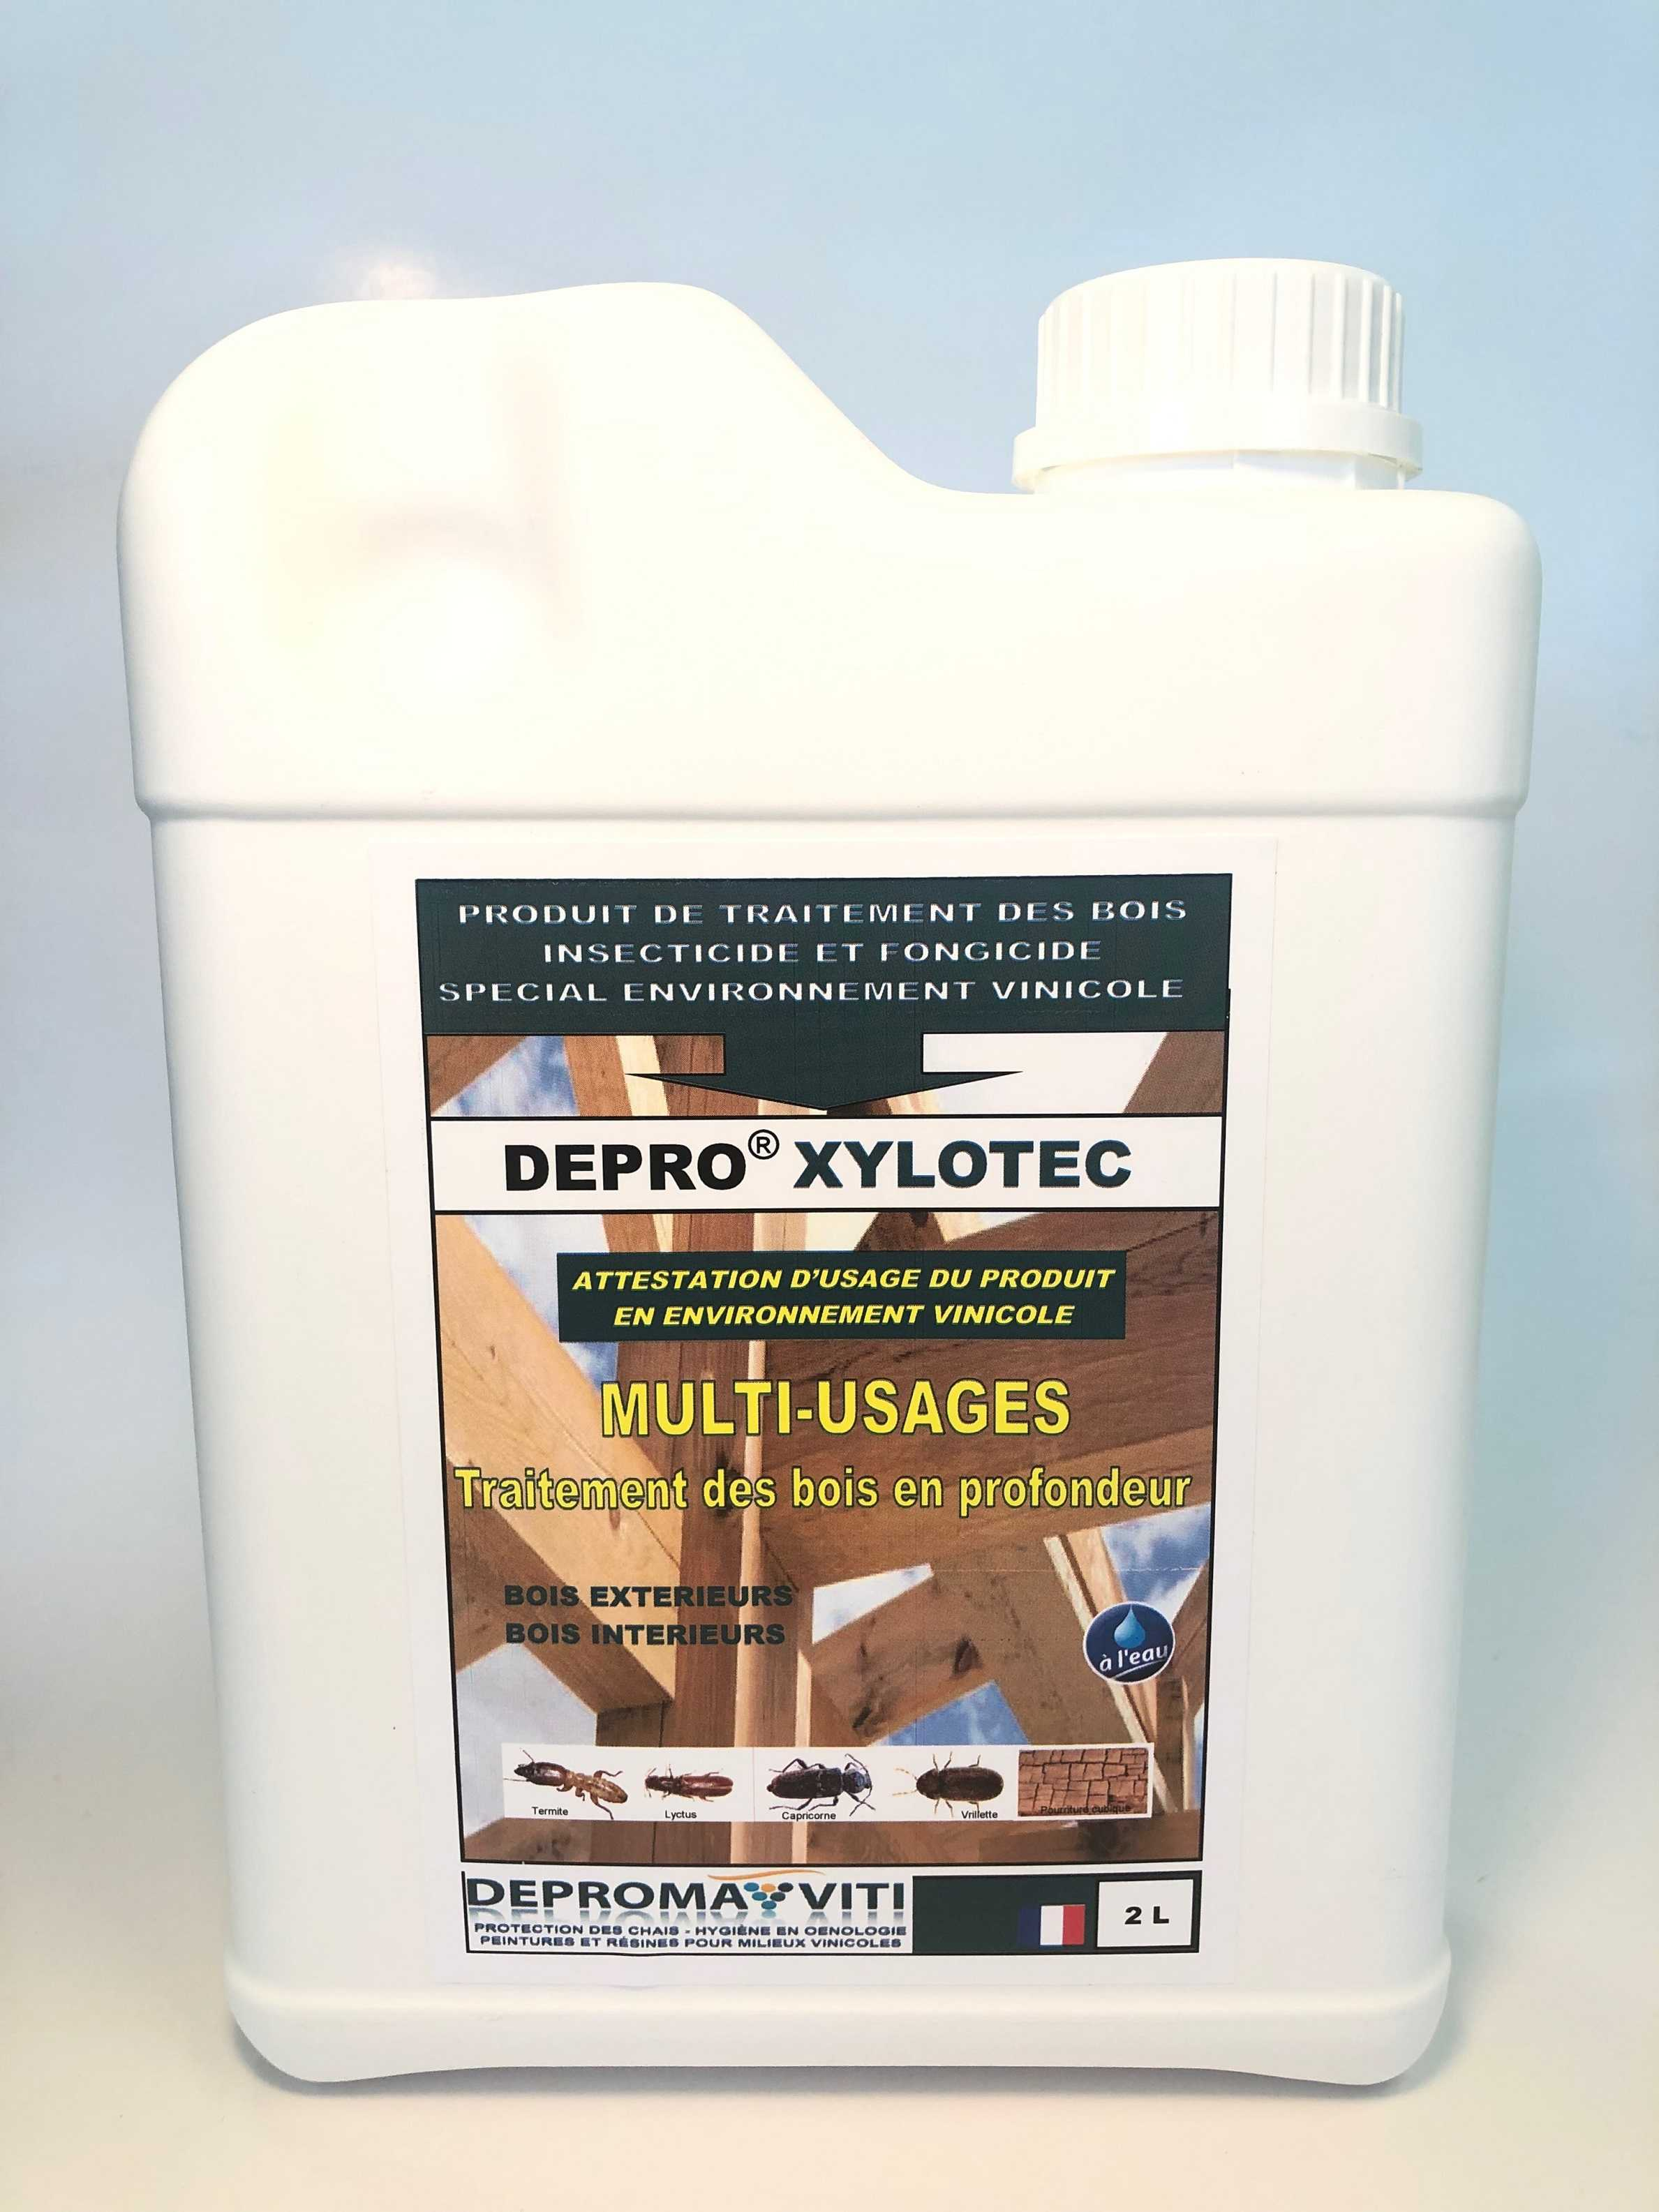 Resine Protection Bois Insecticide And Fungicide Treatment Deproma Viti